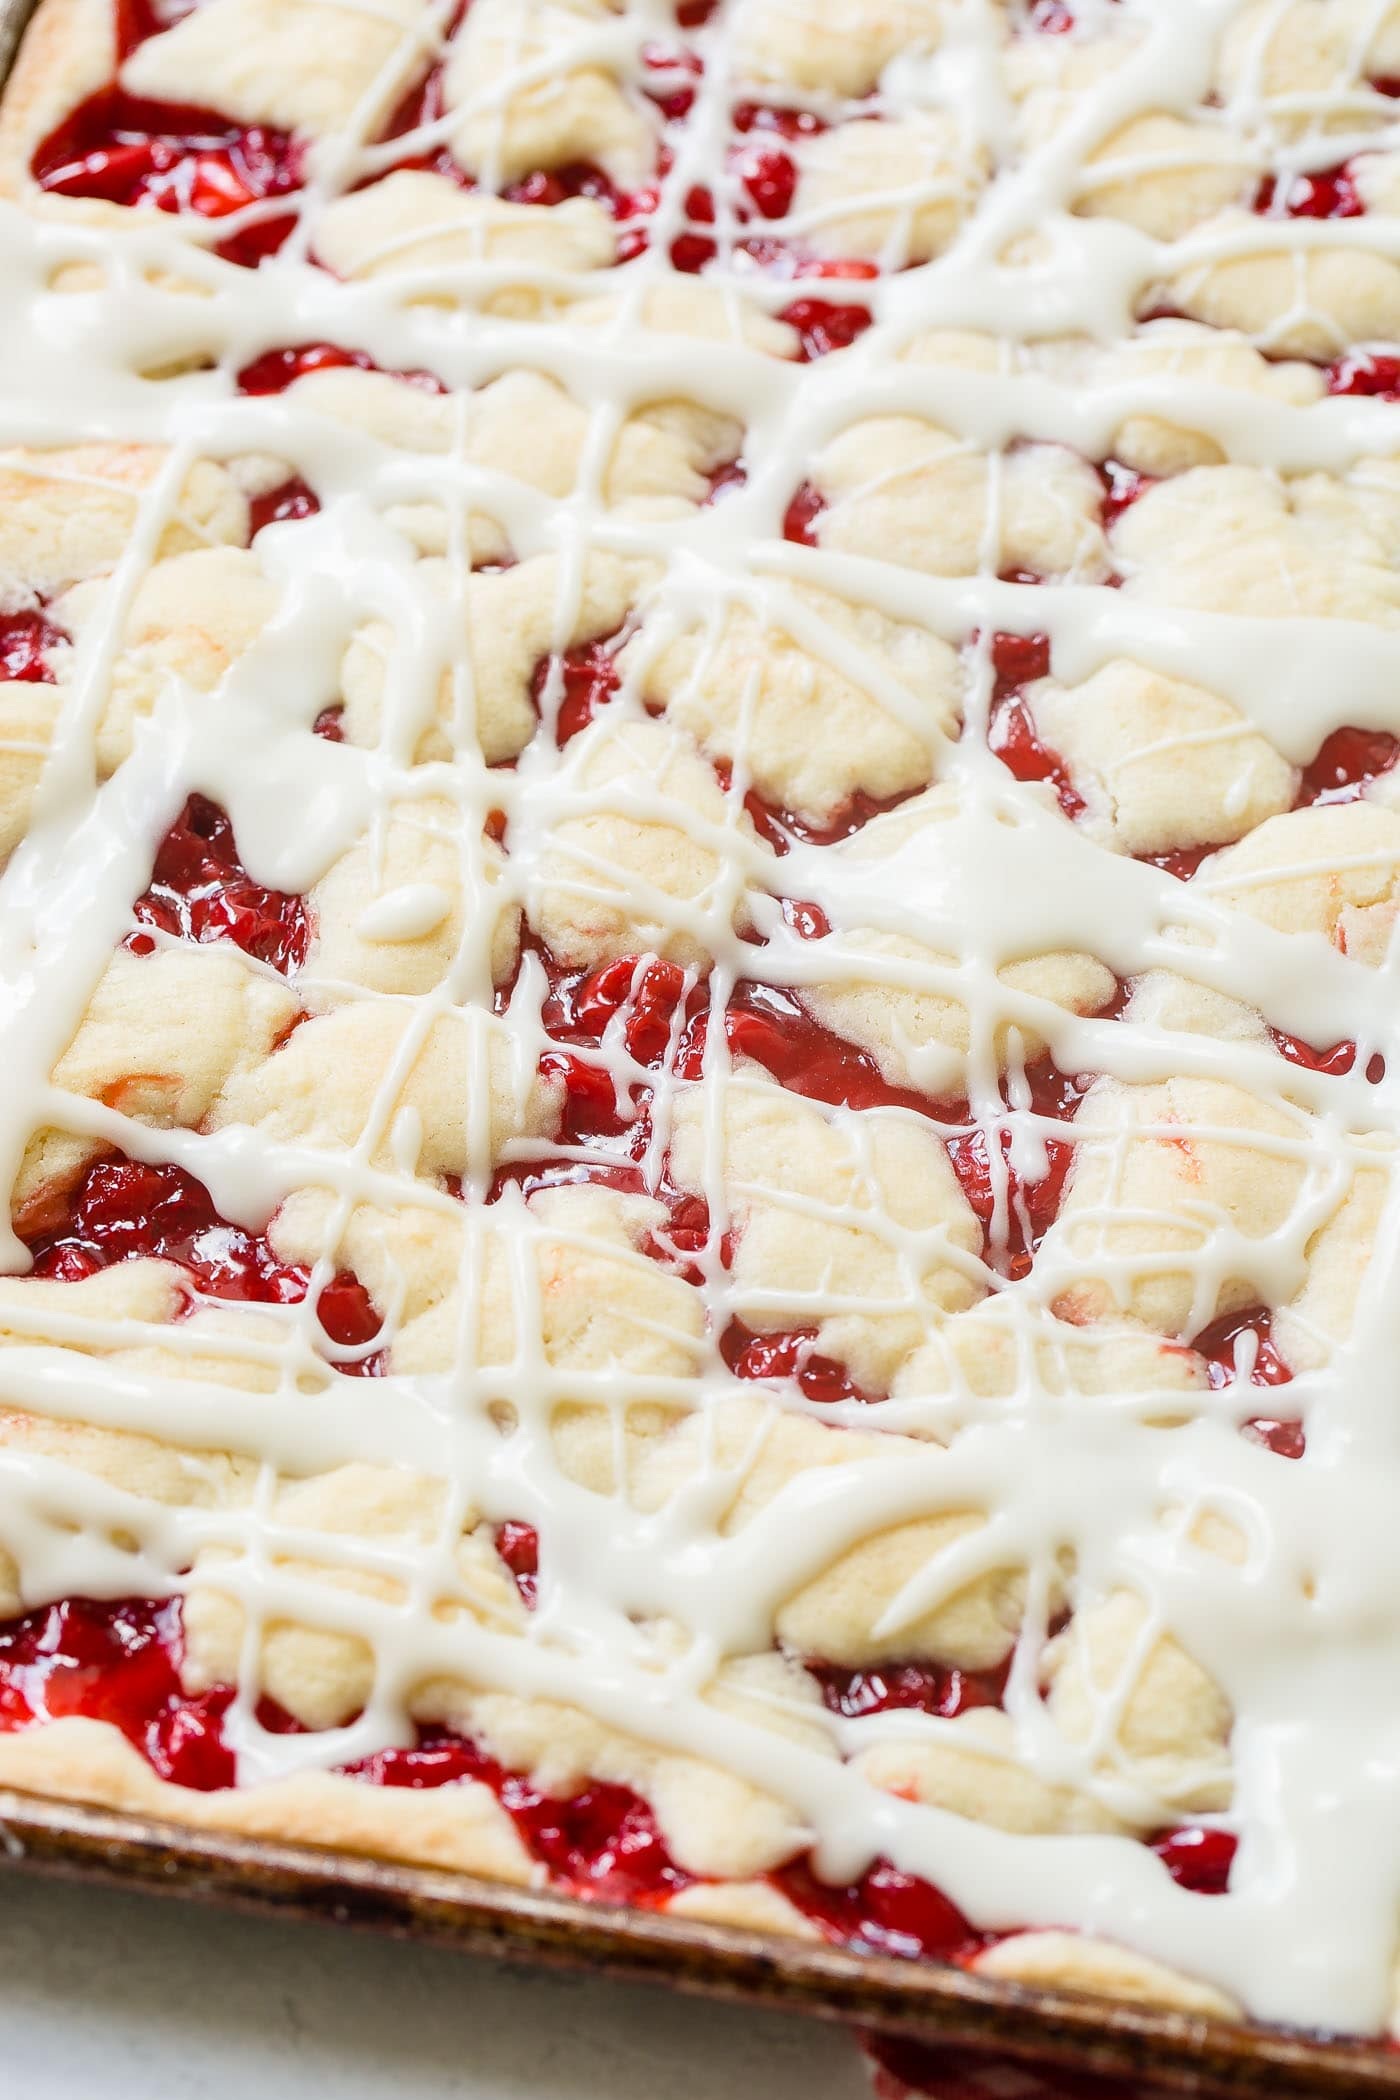 a cookie sheet pan full of cherry pie bars with sweet glaze drizzled over the top